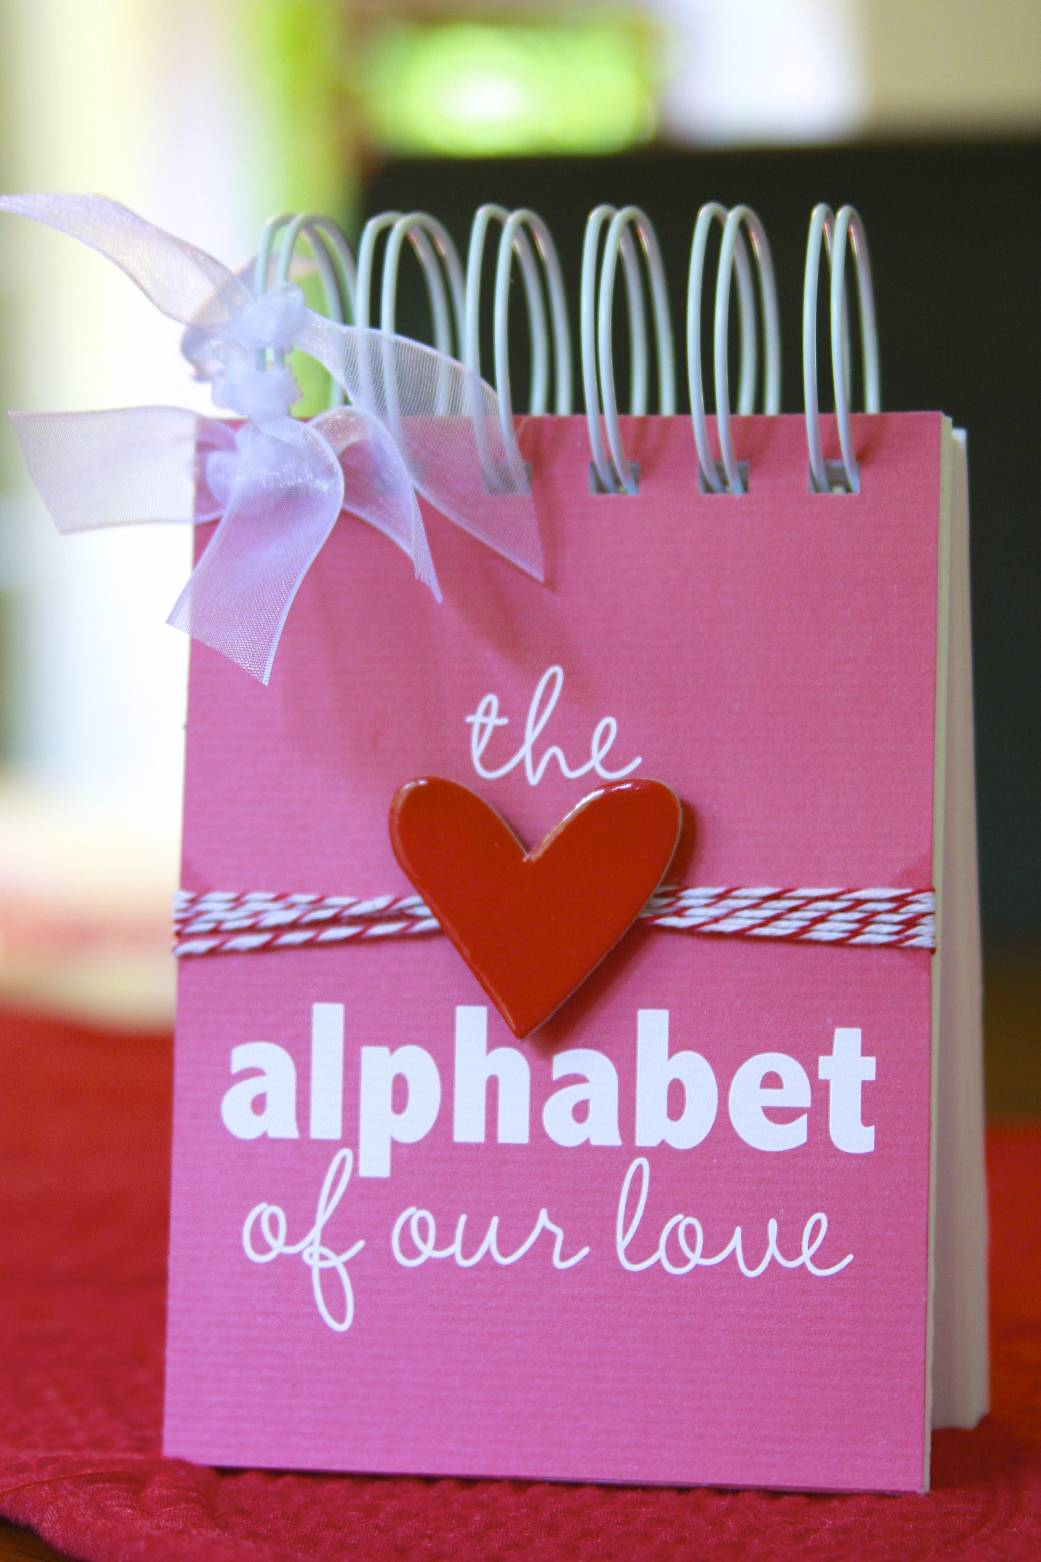 #alphabet #love #anniversary #gift #birthday #reasons #heart